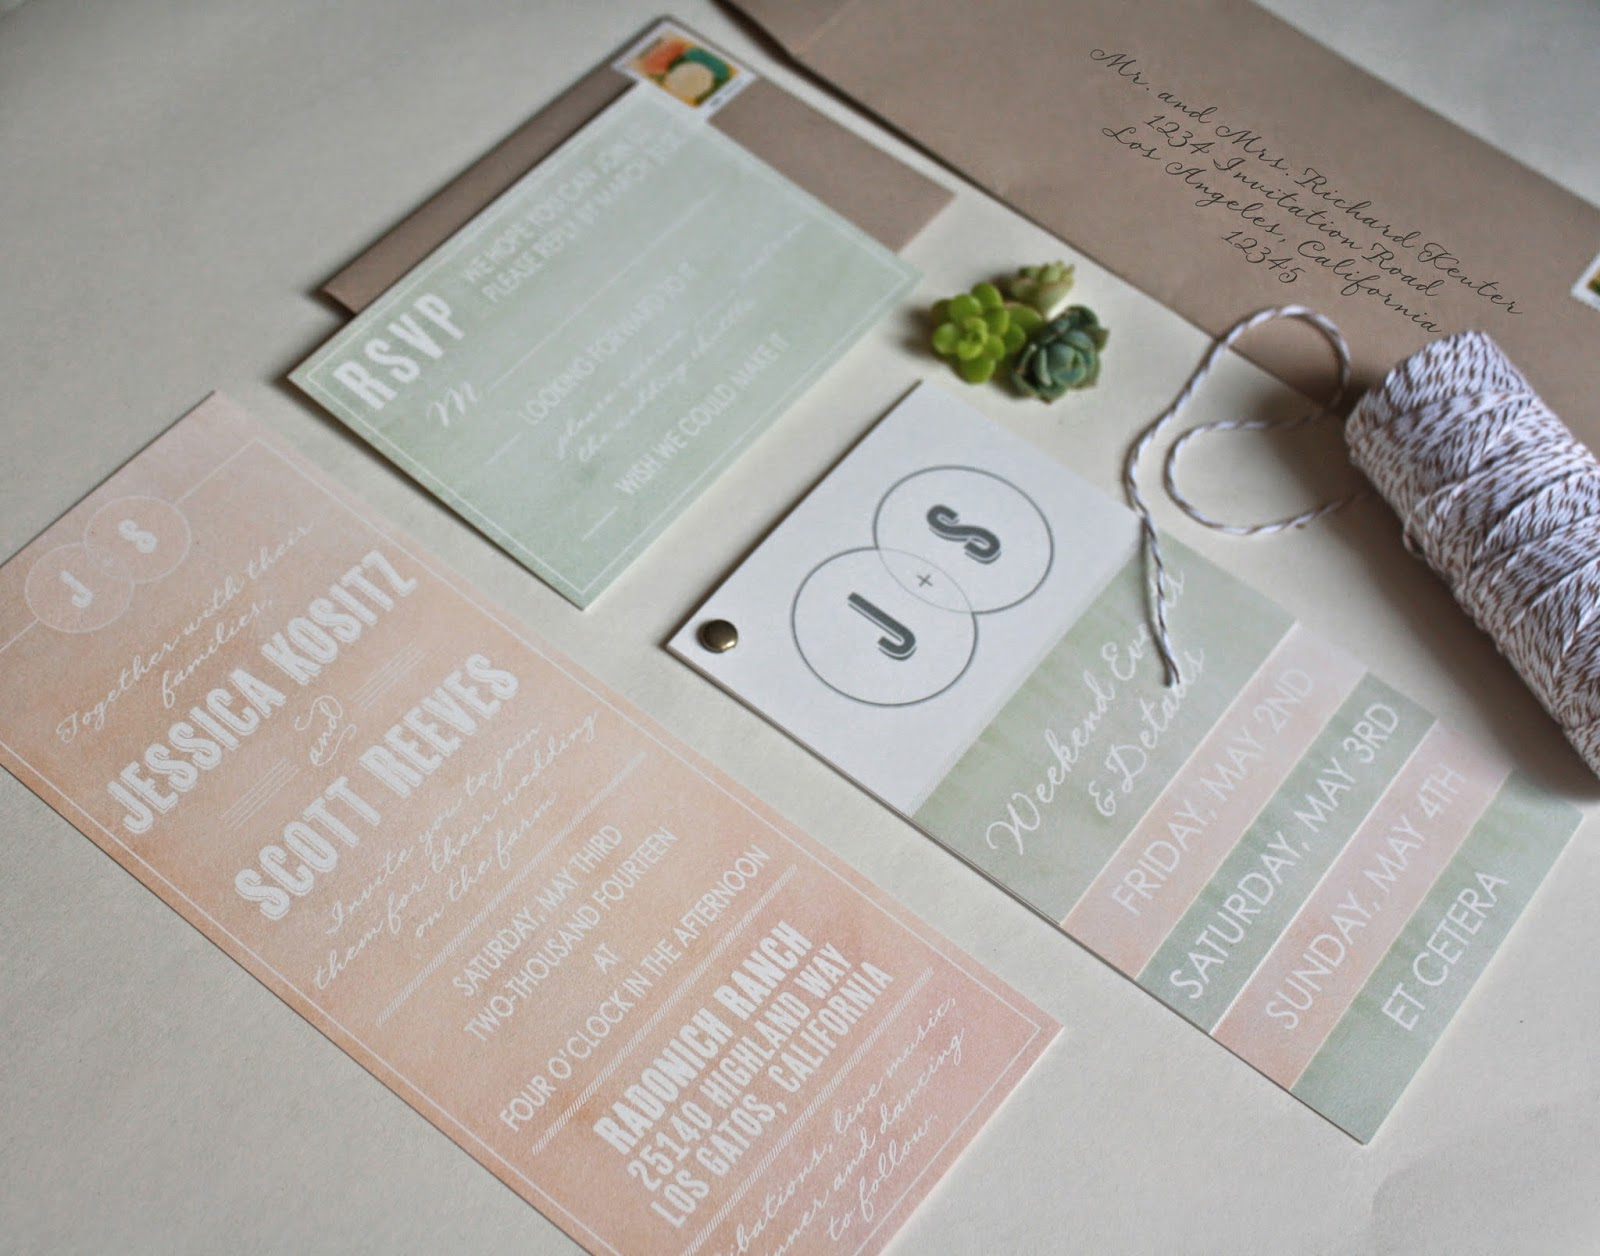 ERICA KEUTER DESIGNS: NORTHERN CALIFORNIA RANCH WEDDING INVITATIONS